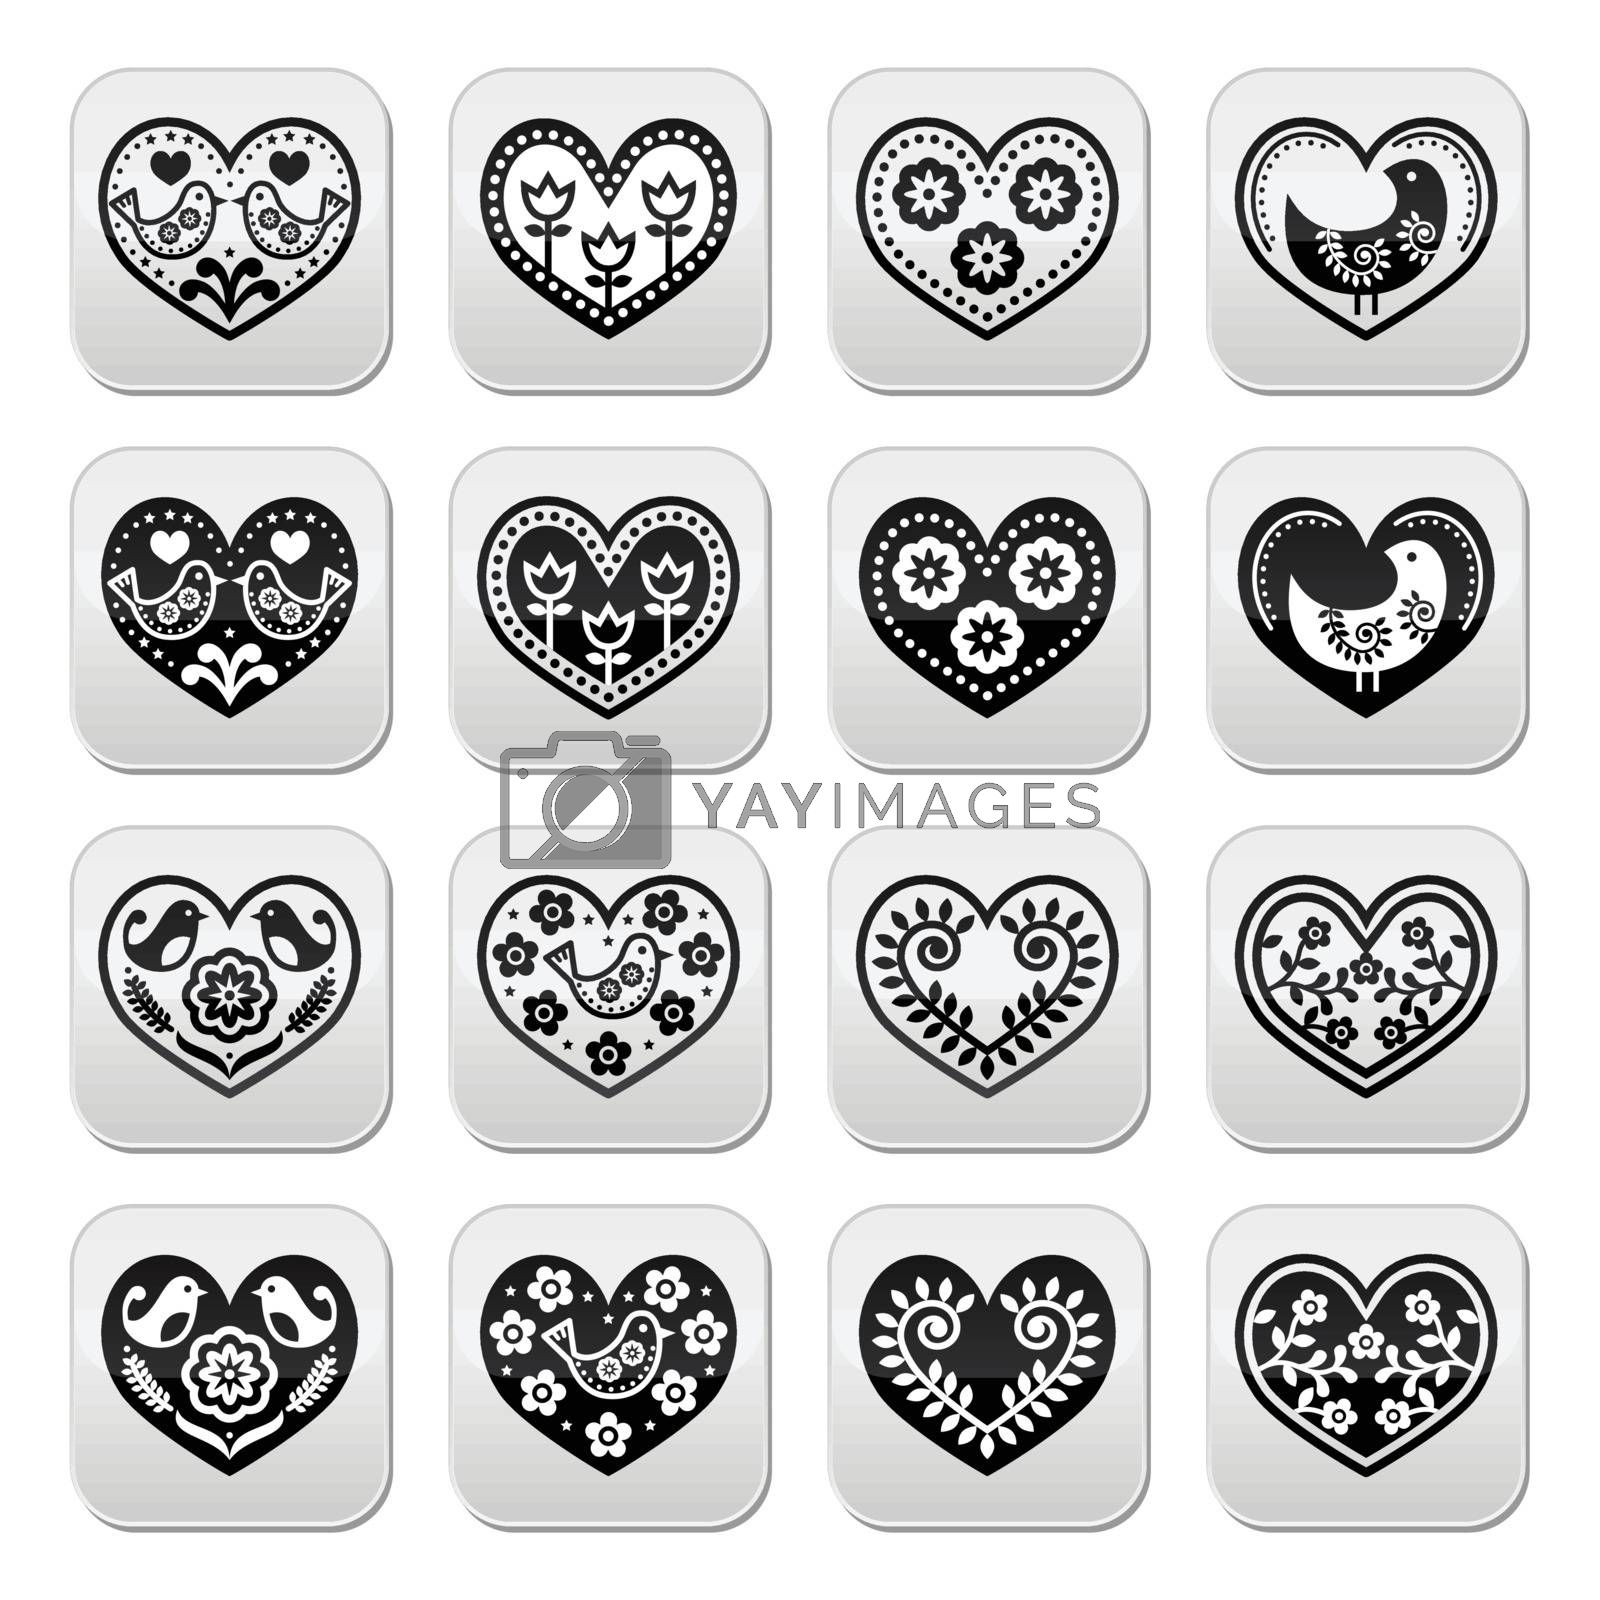 Folk hearts with flowers and birds buttons set by RedKoala